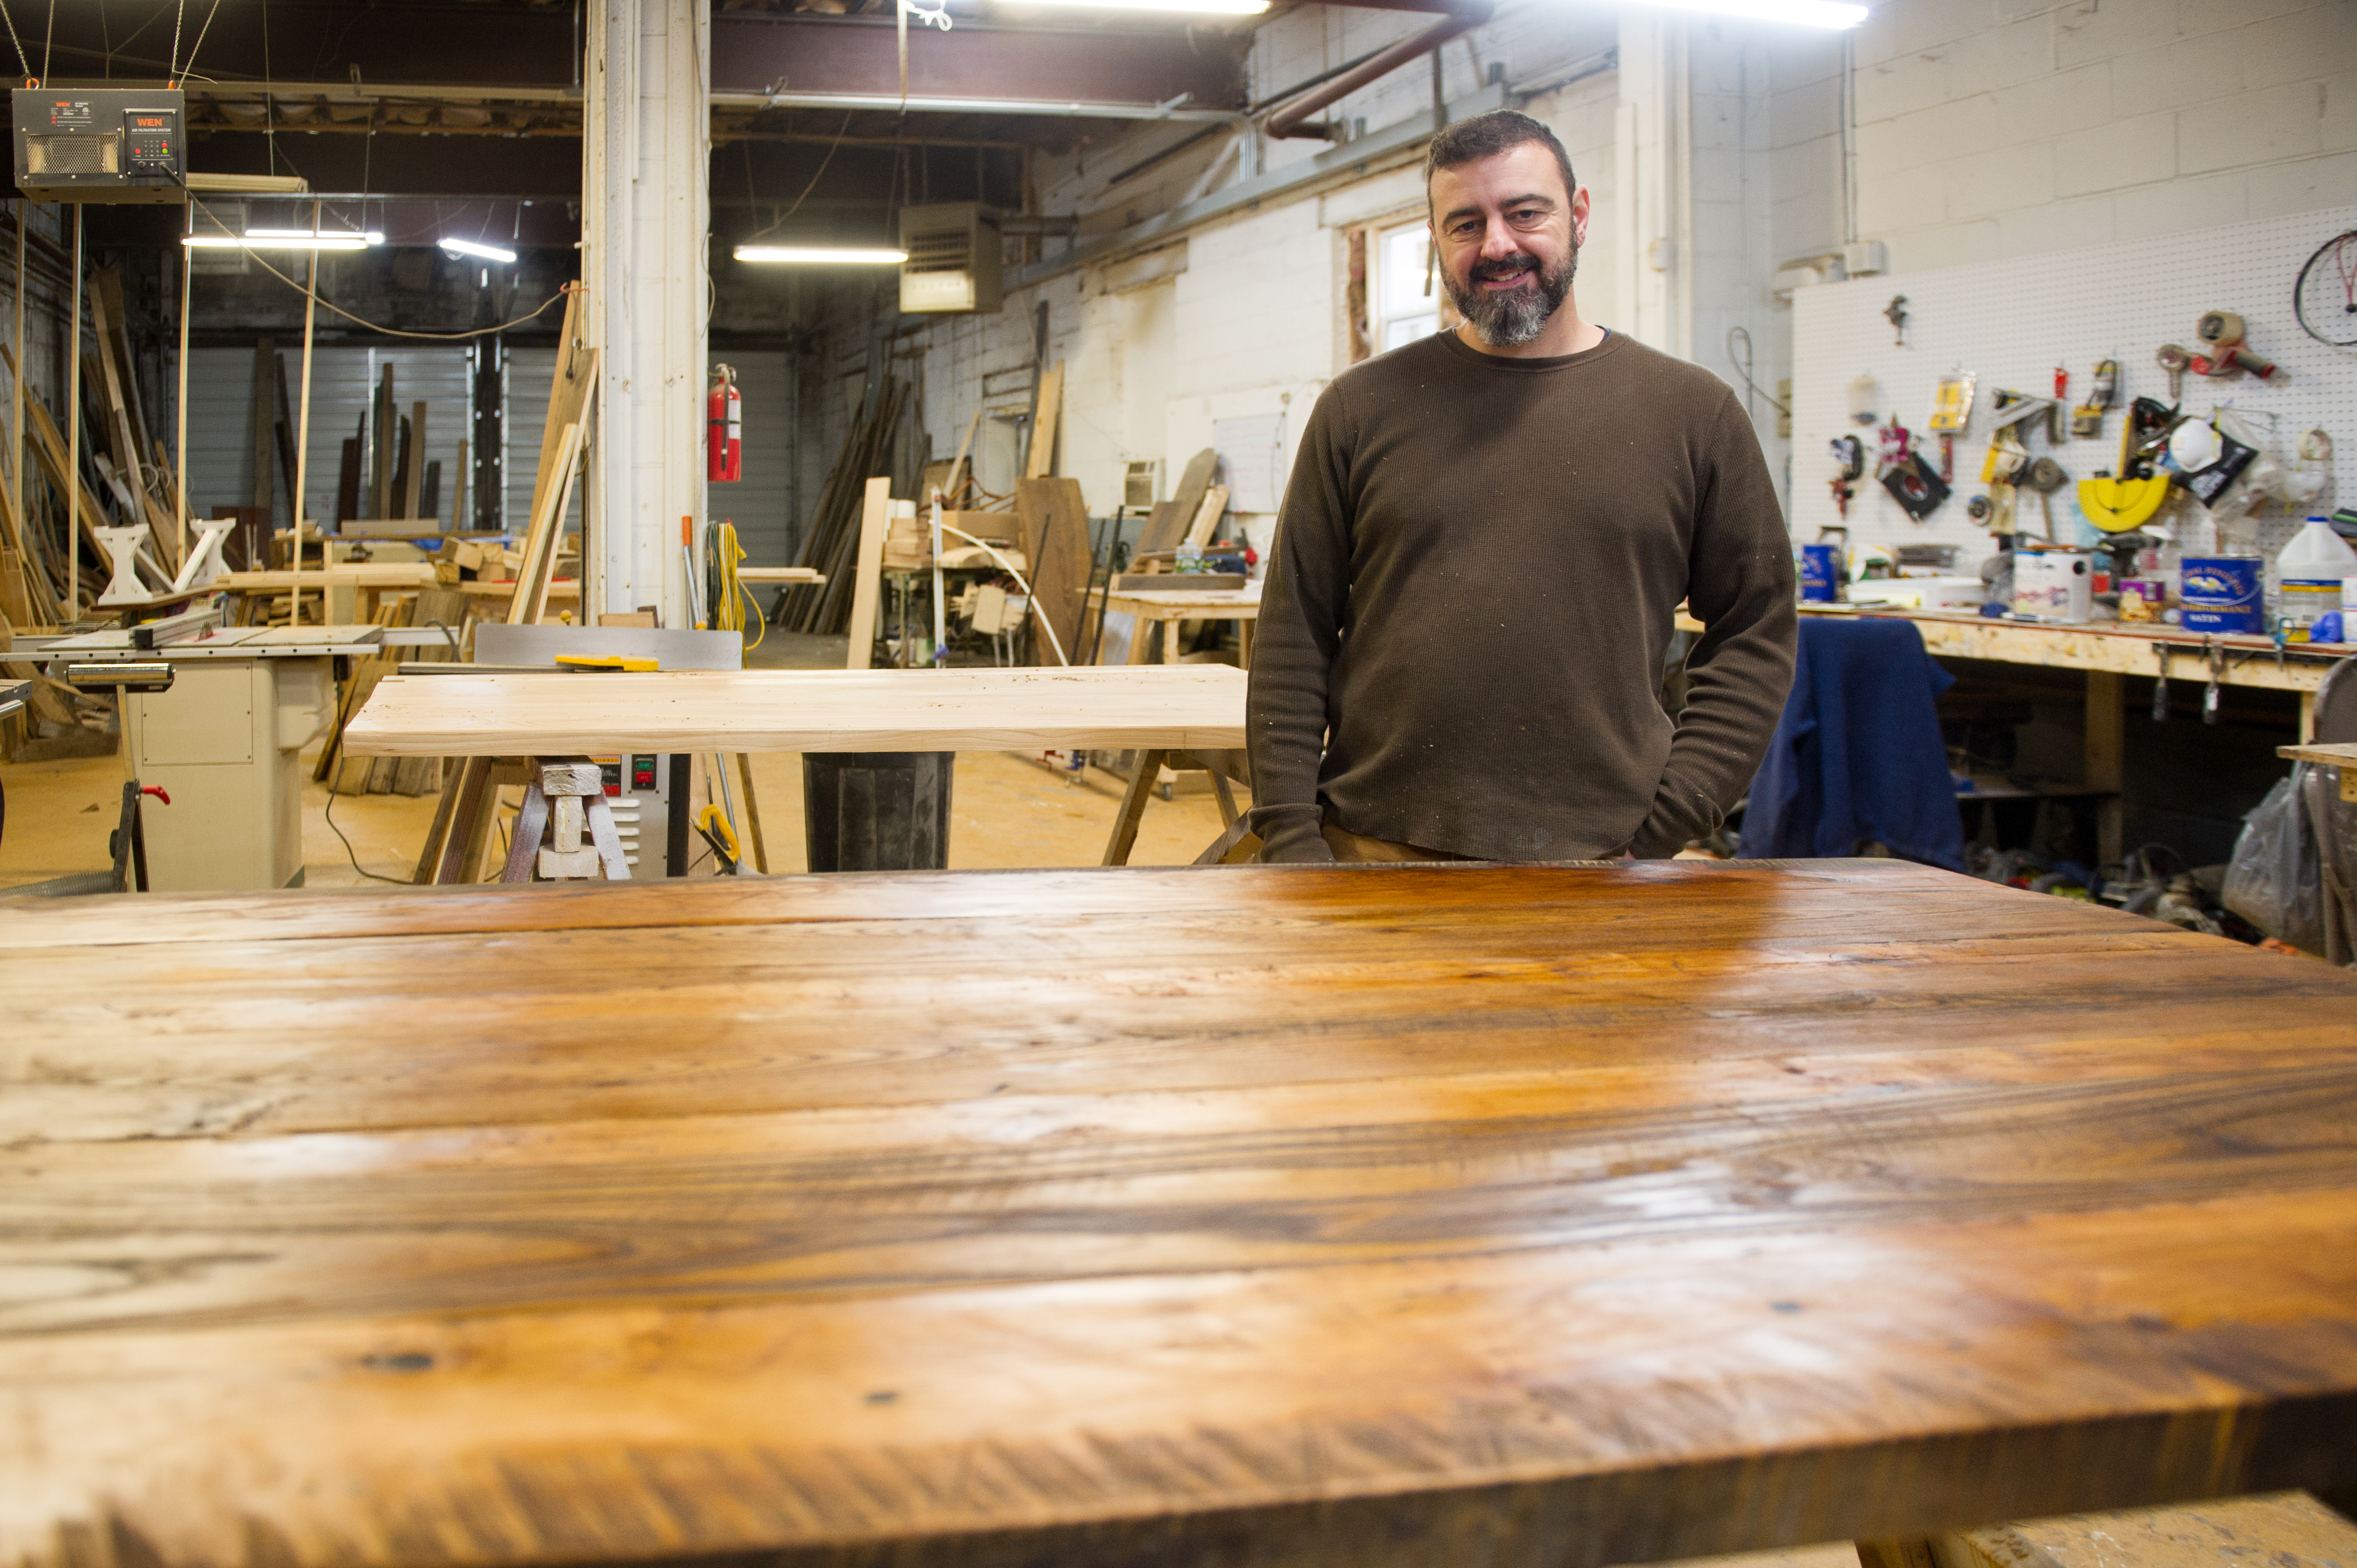 It Guy Finds Greater Reward Working With Wood Rochester